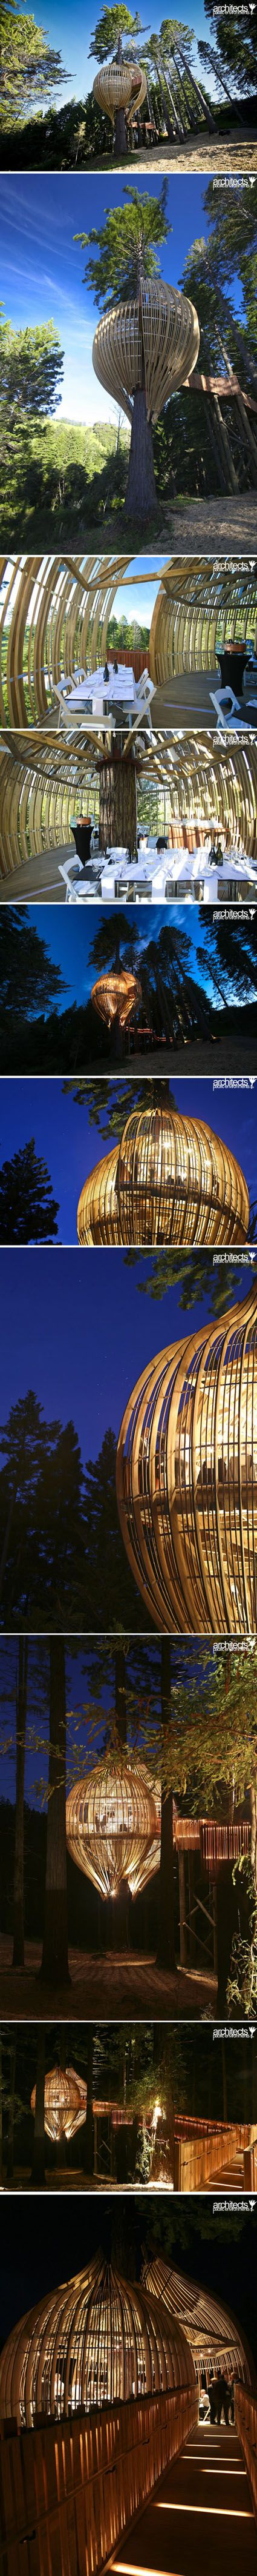 treehouse restaurant cafe yellow pacific environments architects